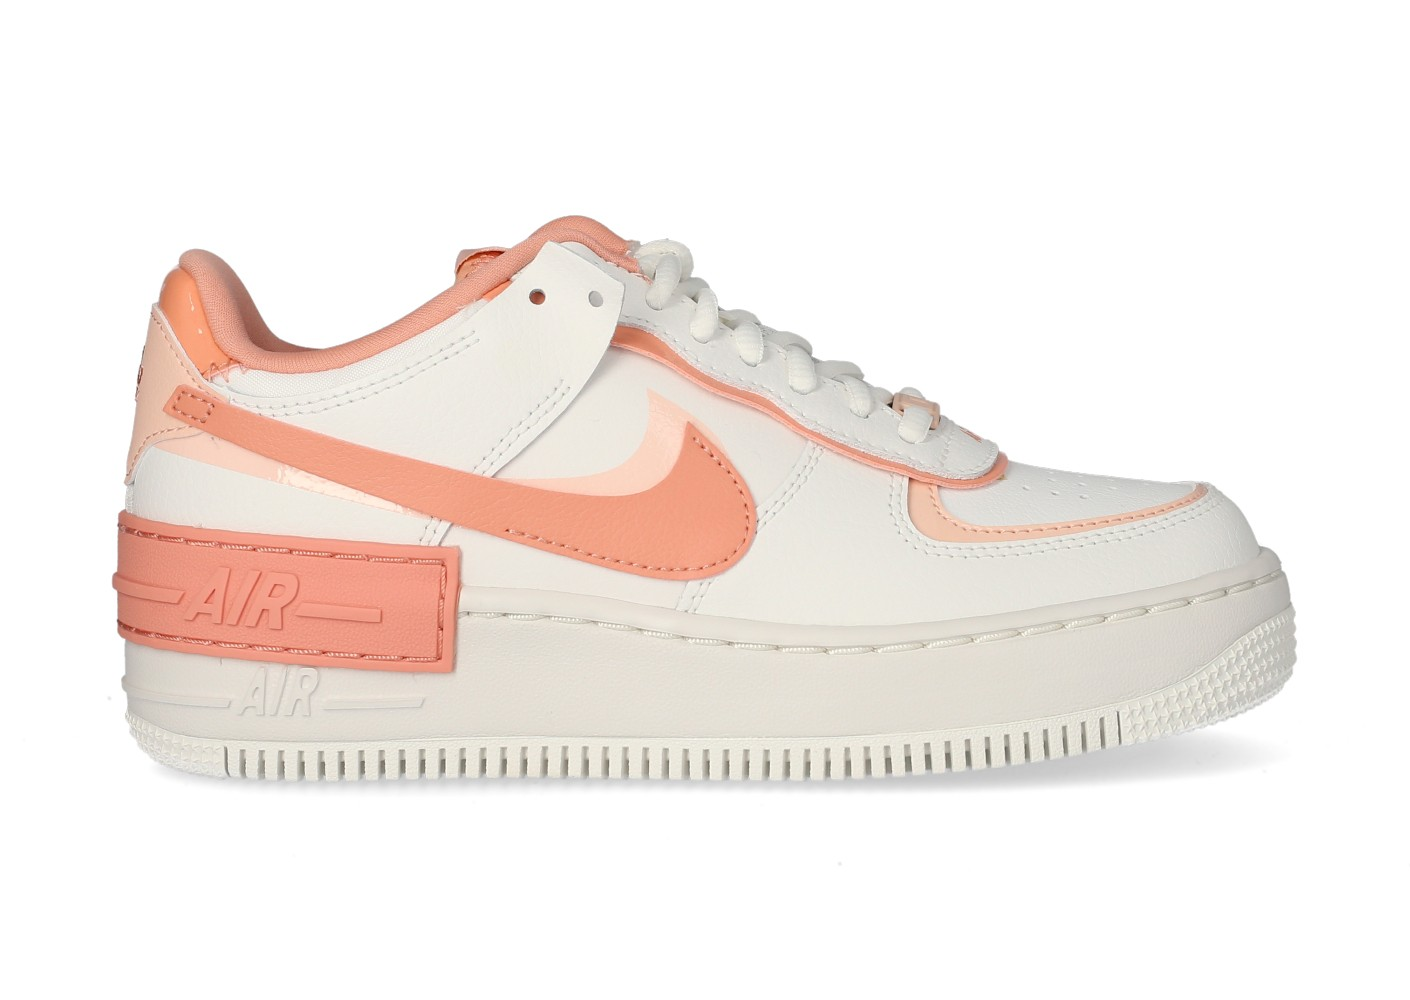 Nike Air Force 1 Shadow blanche et rose Femme - Chaussures Baskets ...